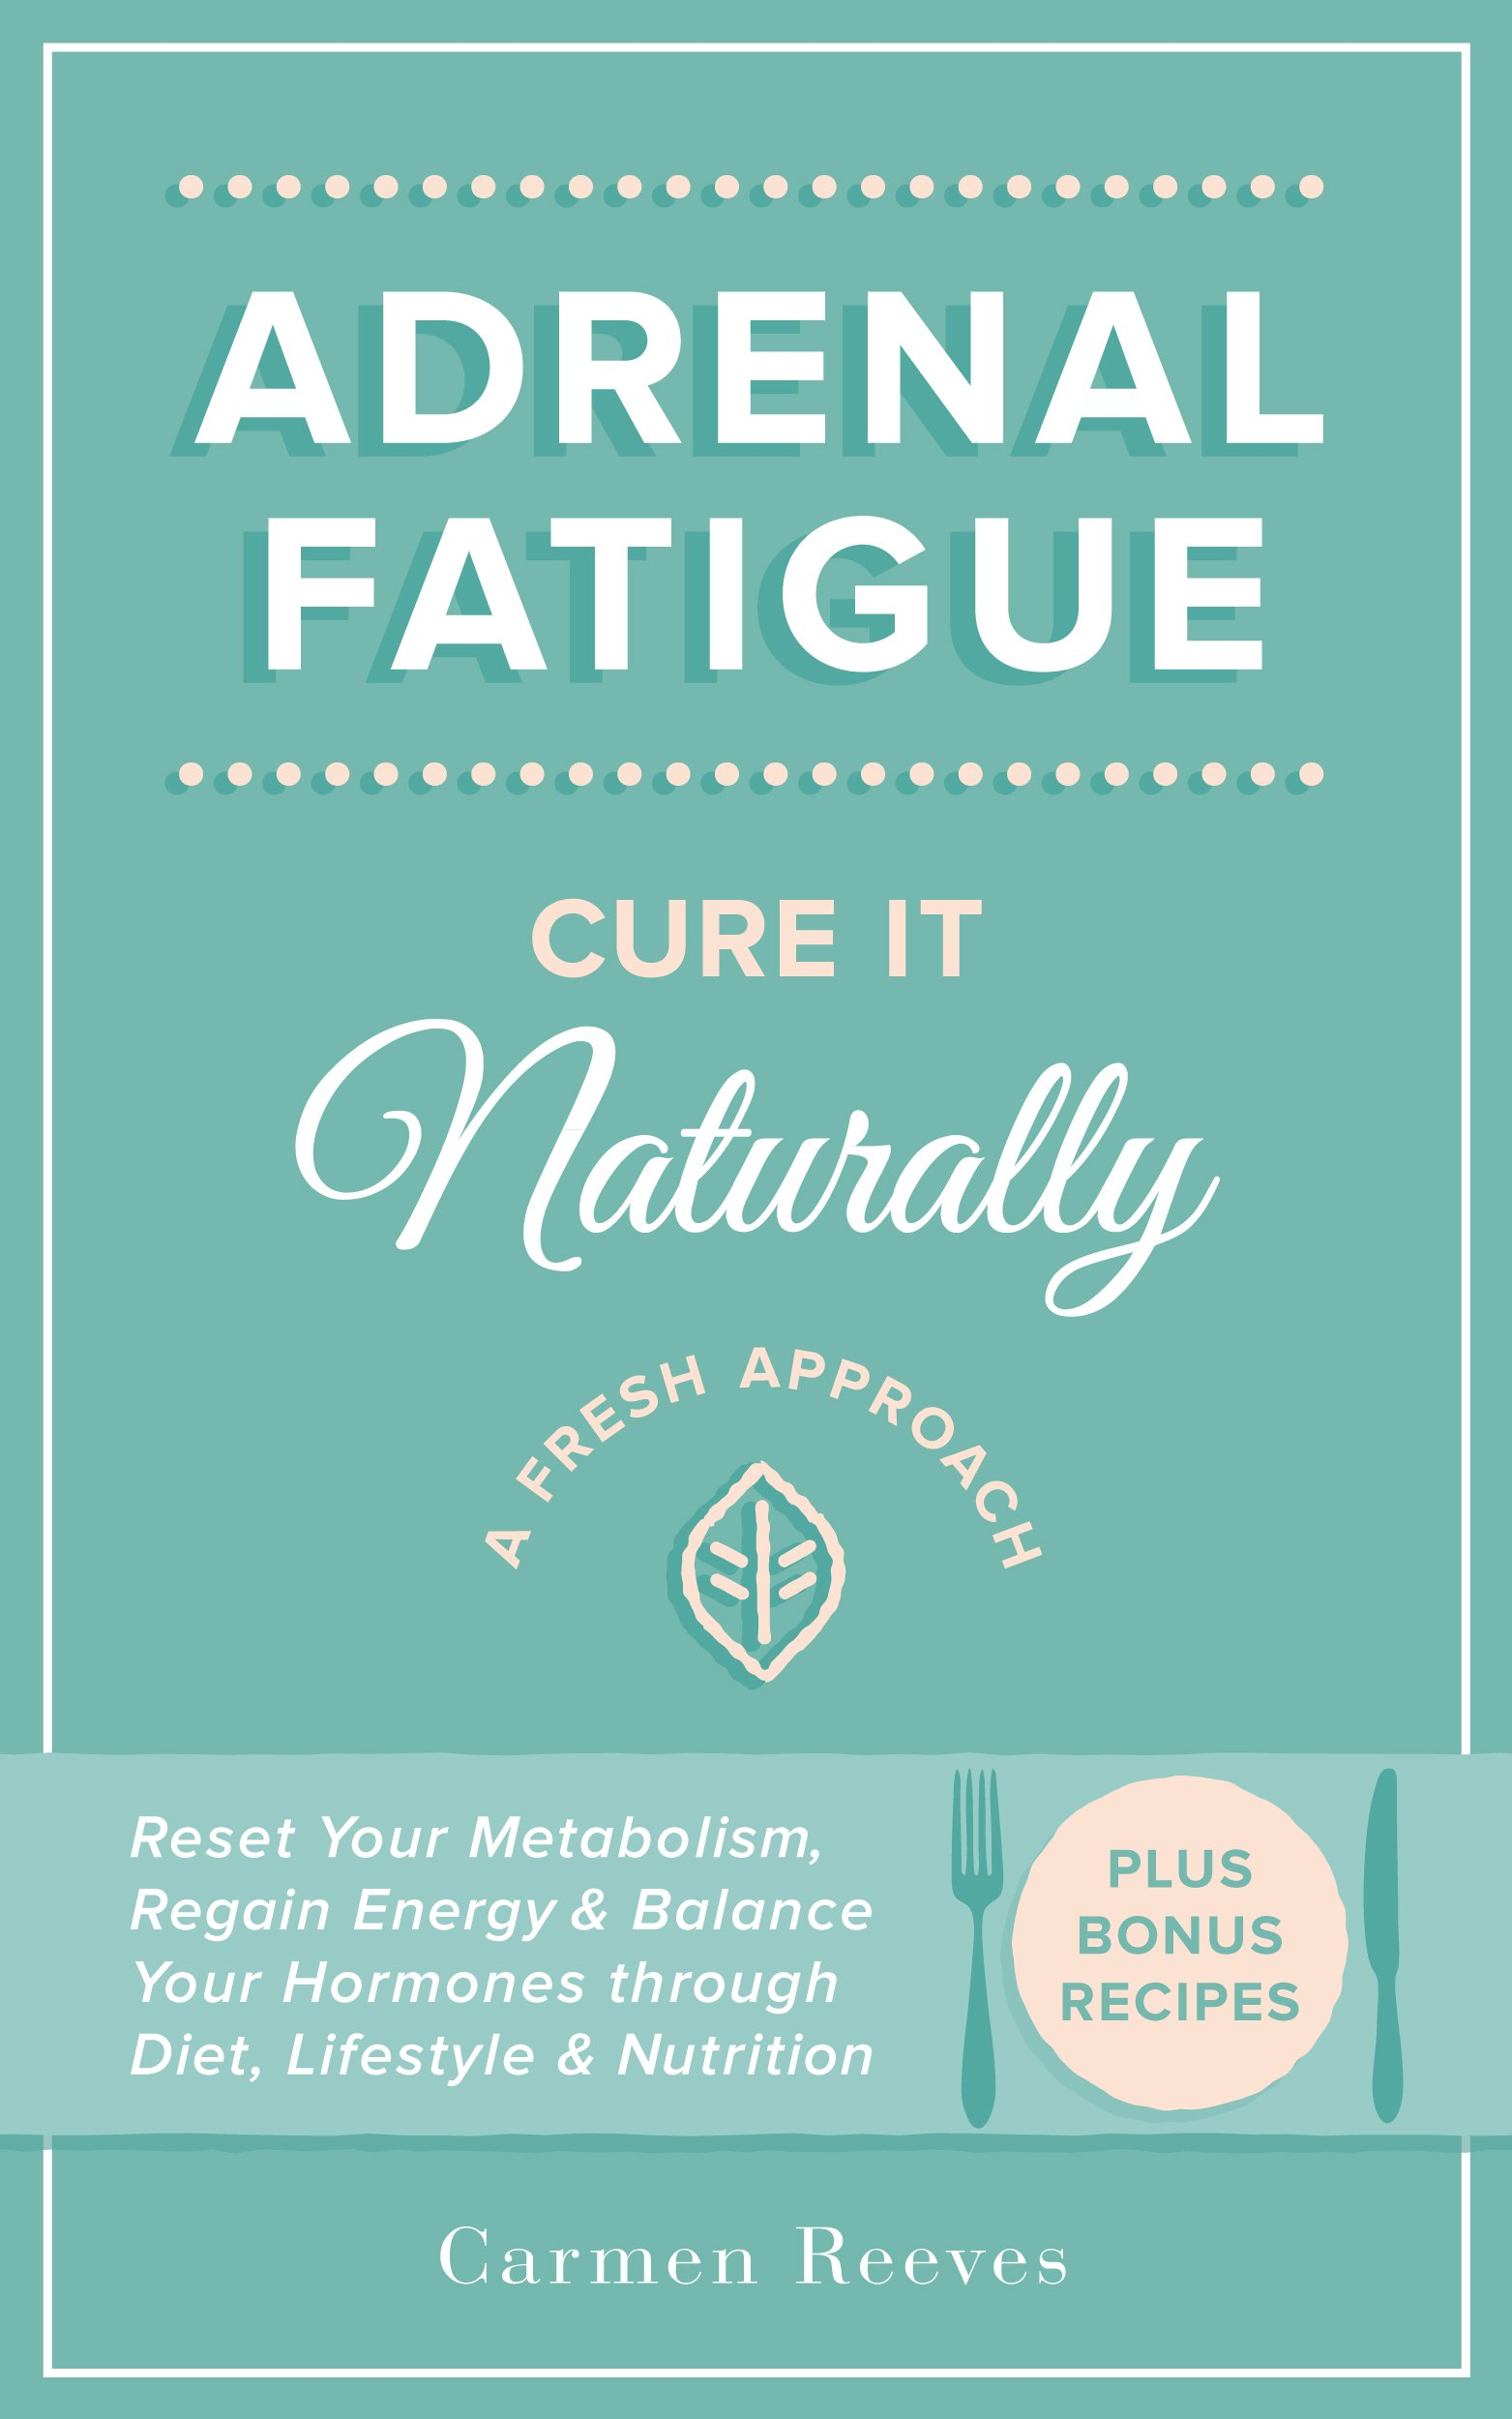 Adrenal Fatigue  Cure It Naturally   A Fresh Approach To Reset Your Metabolism Regain Energy And Balance Hormones Through Diet Lifestyle And Nutrition  Plus Bonus Adrenal Diet Recipes   English Edition